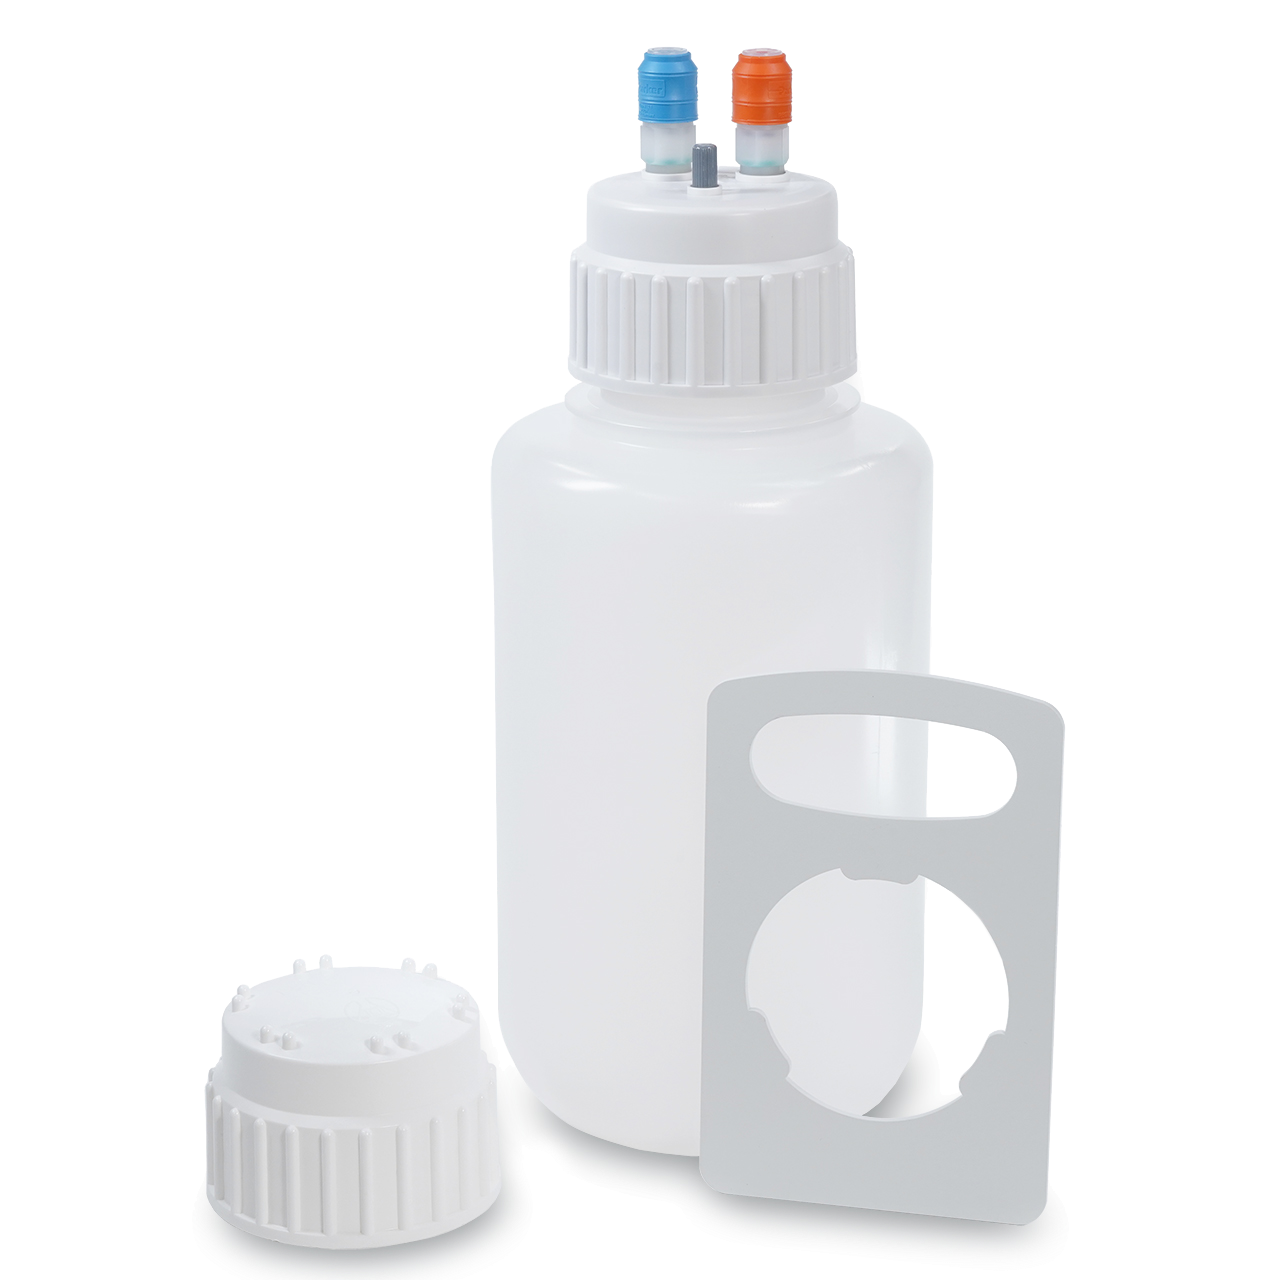 vacuum aspirator accessories